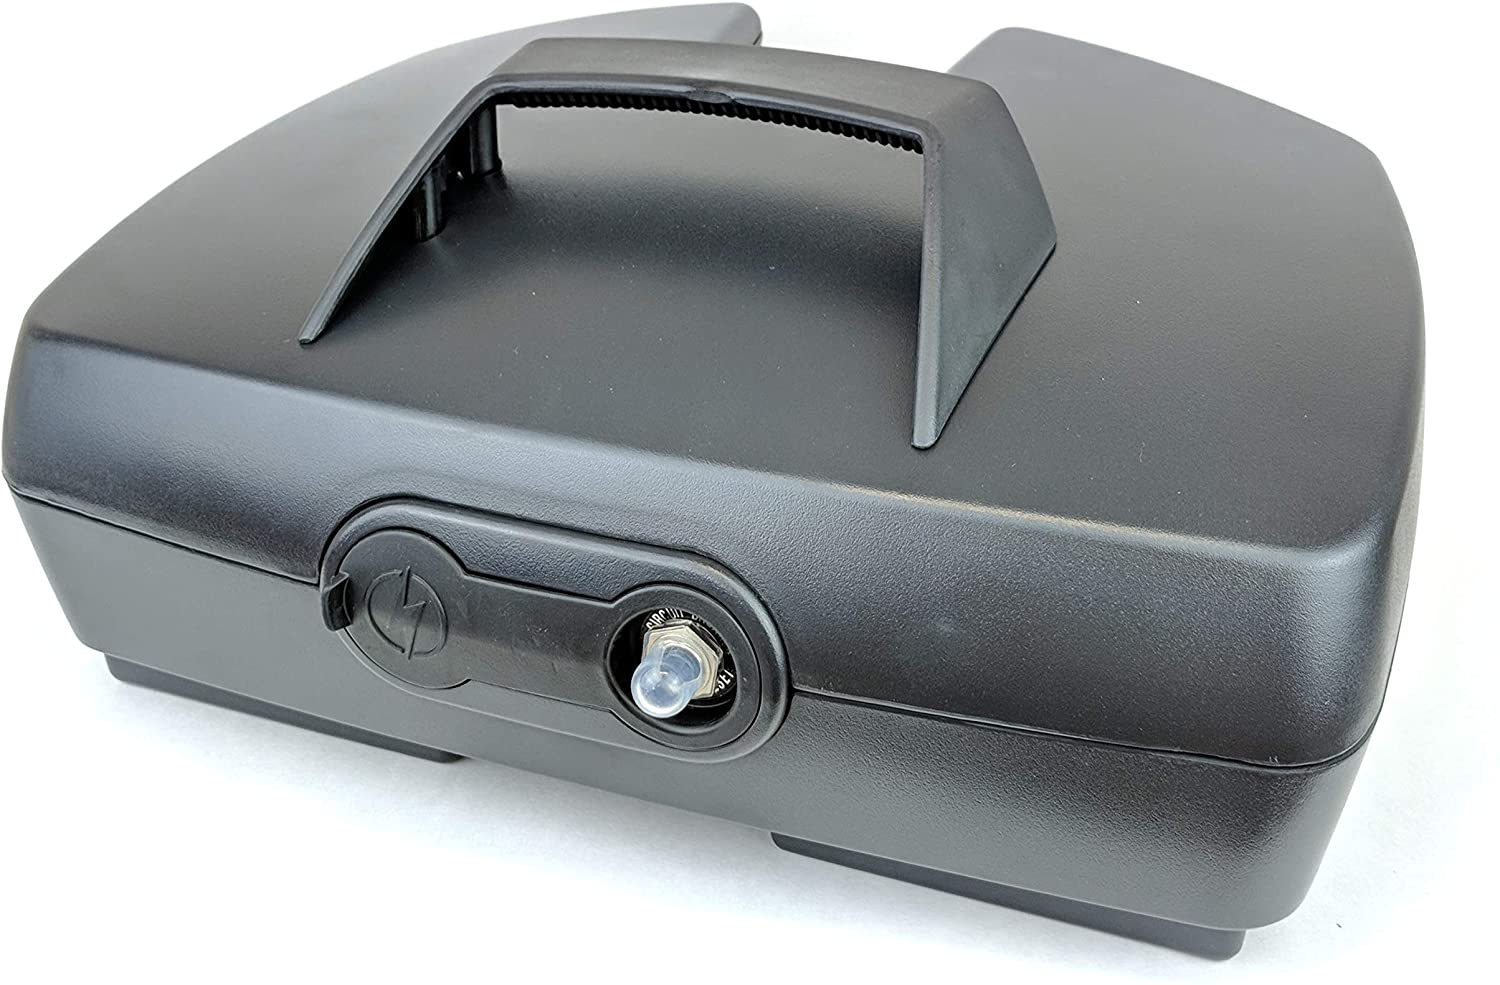 Battery box for mobility scooter